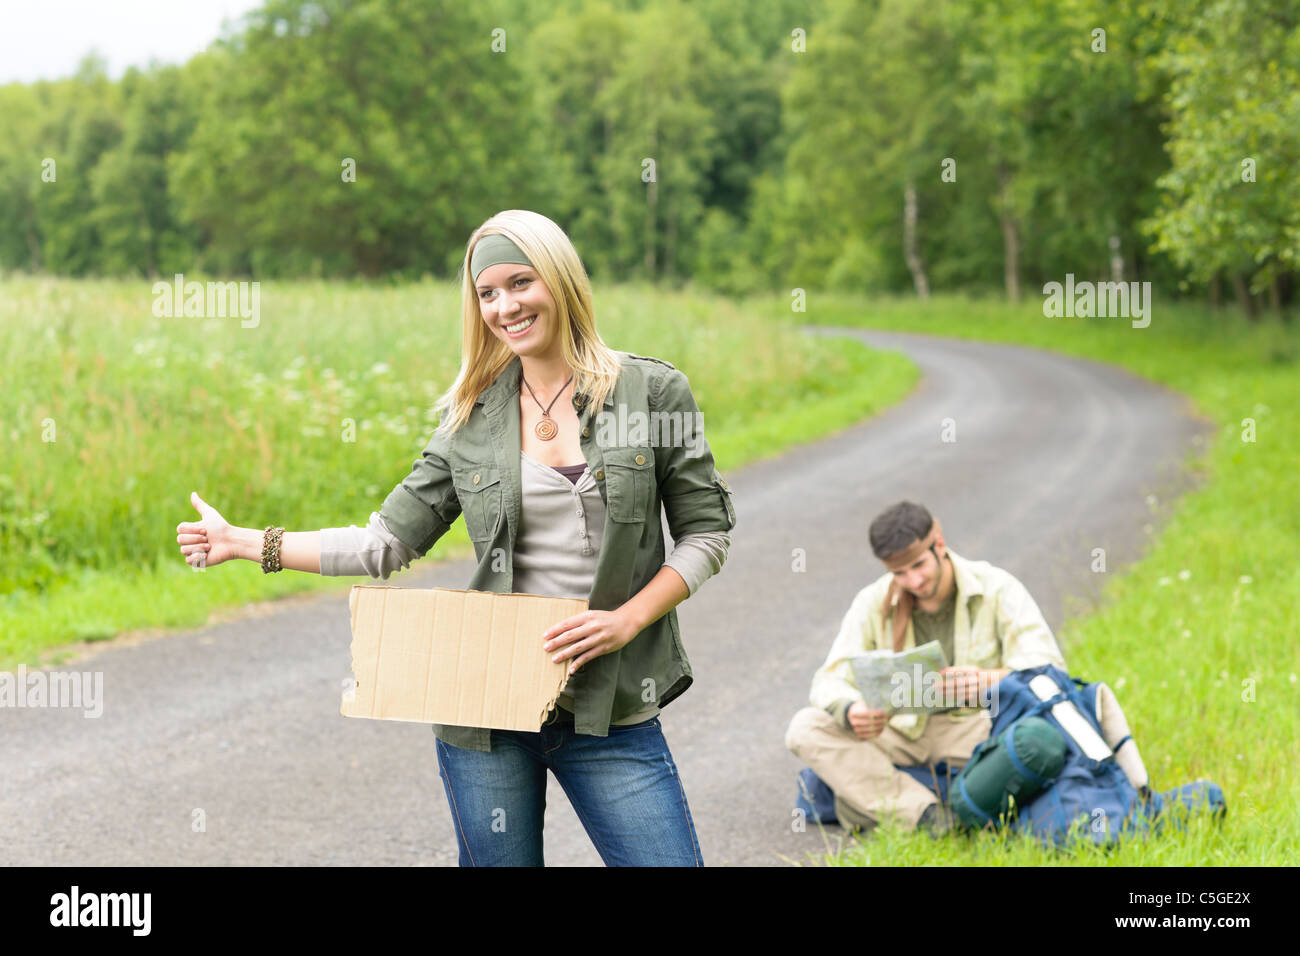 Hitch-hike young couple backpack tramping on asphalt road play guitar - Stock Image